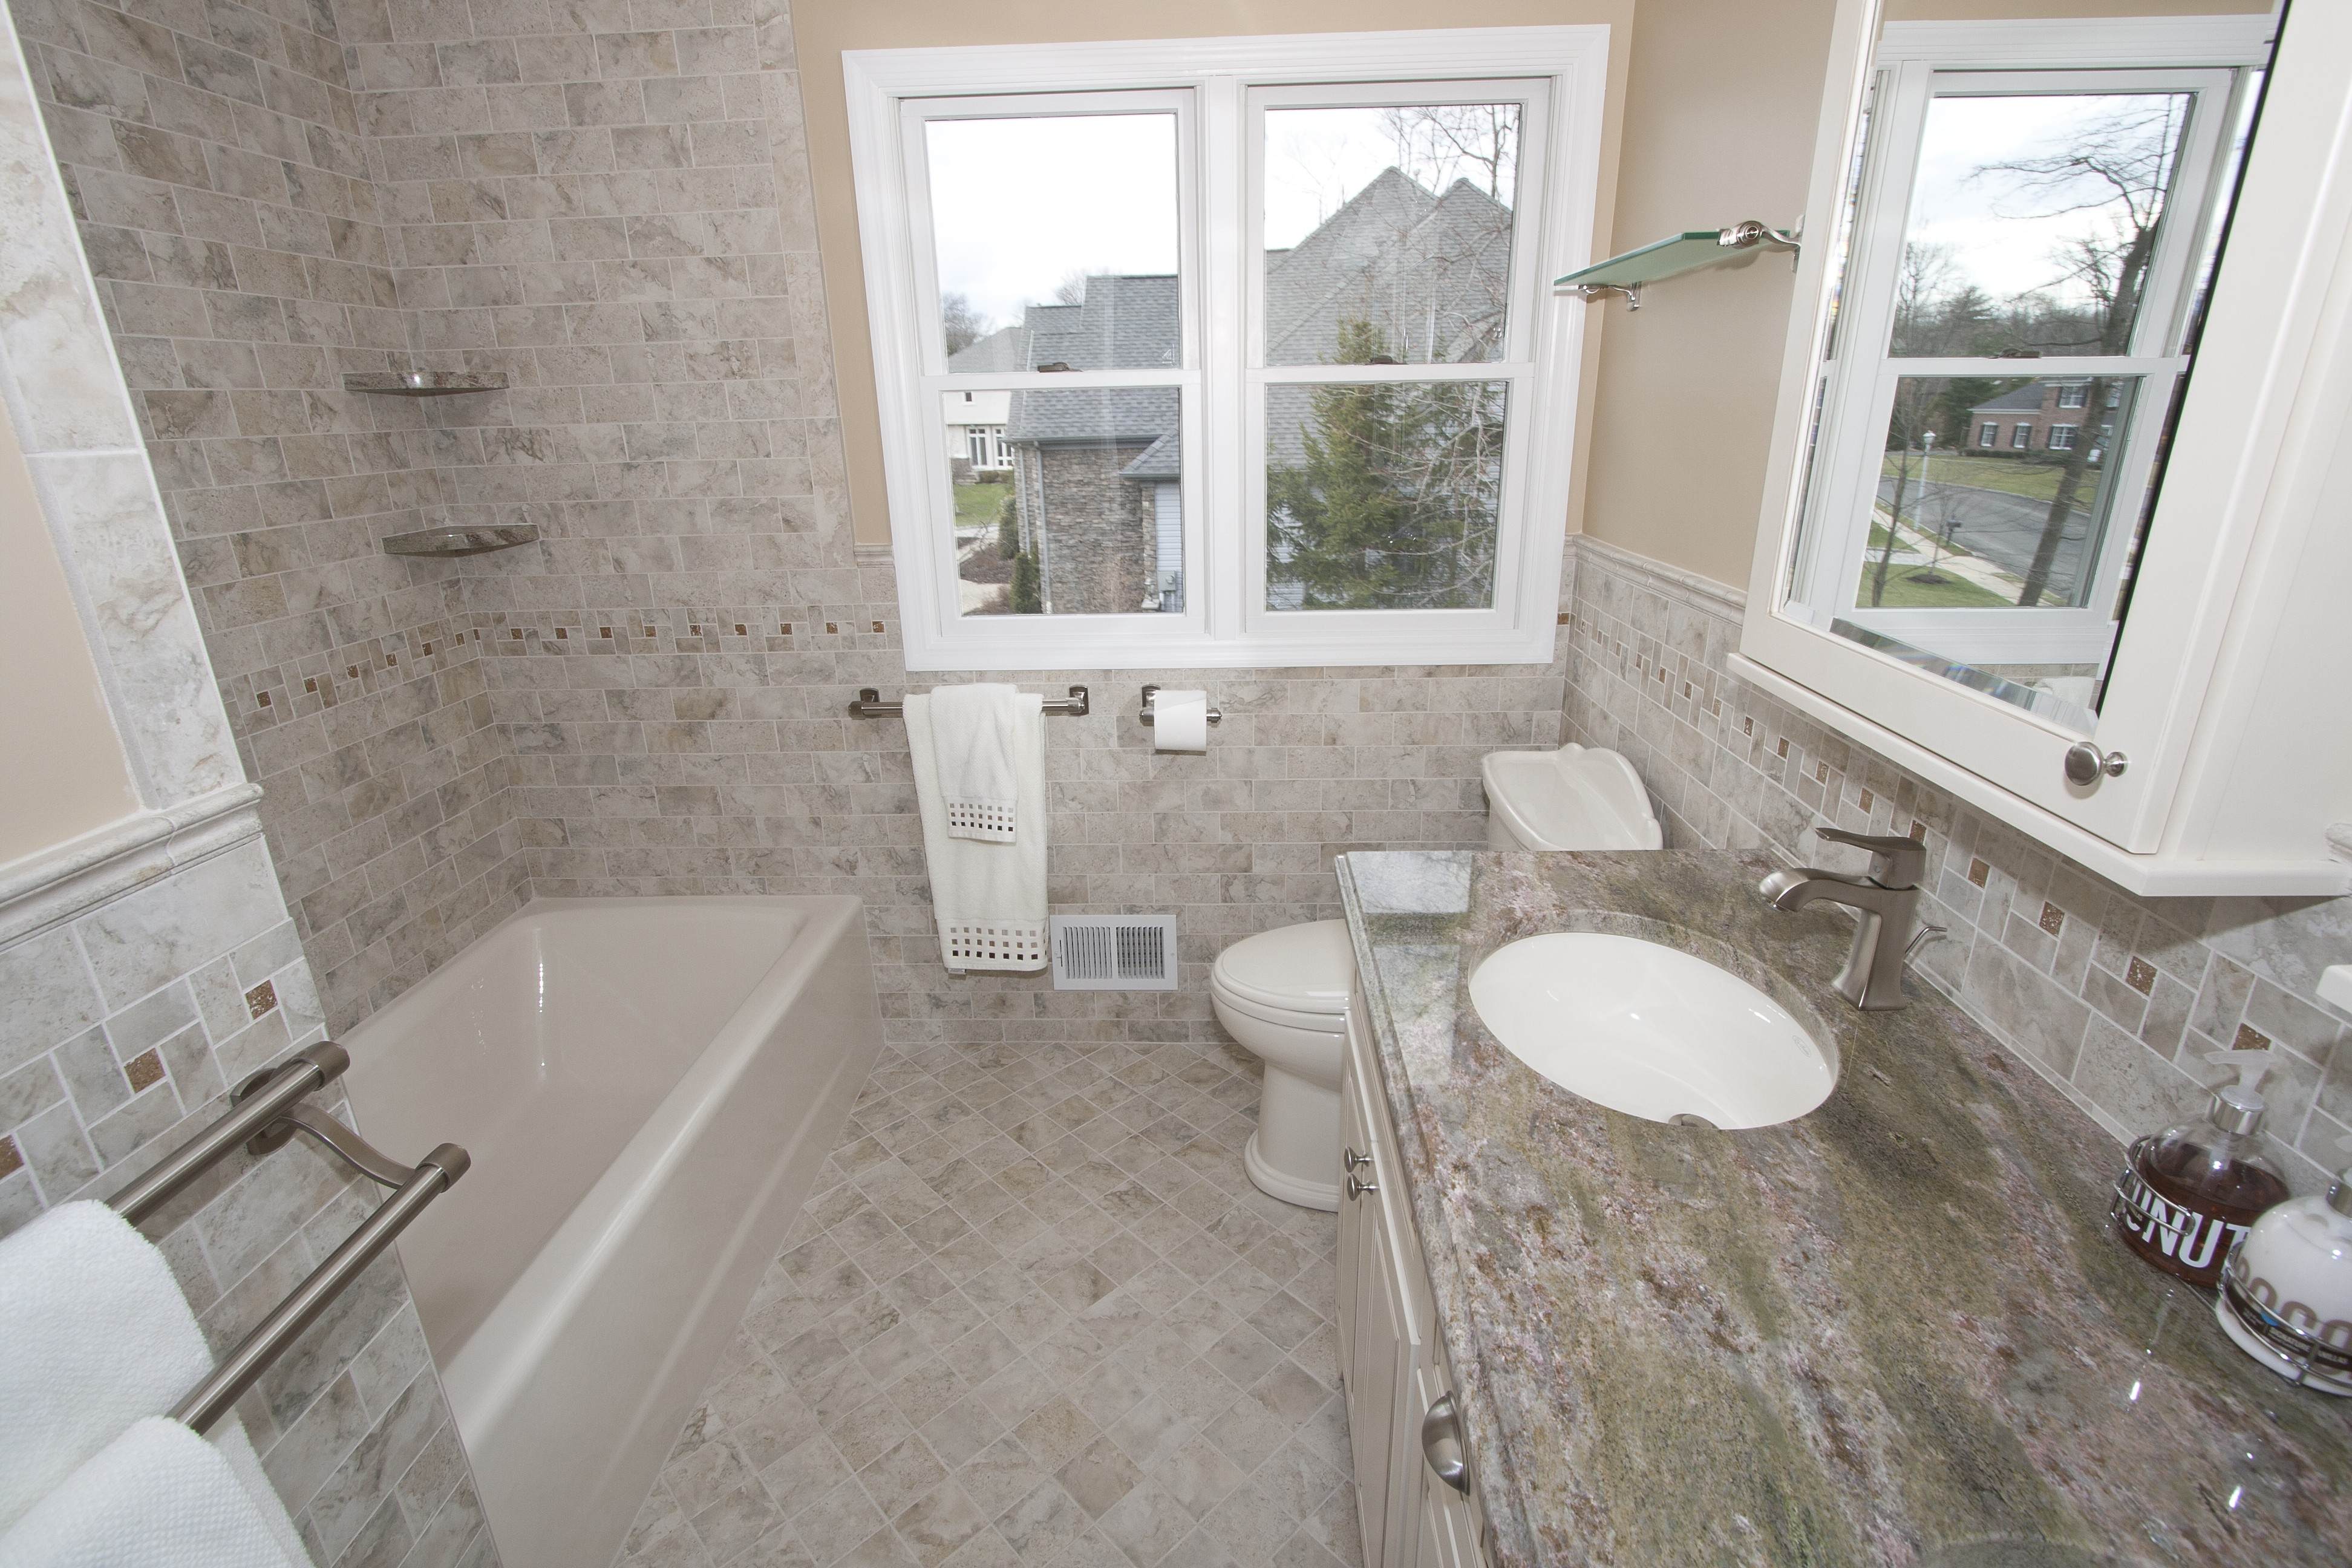 Bathroom Renovation Price monmouth county nj master bathroom remodel estimates